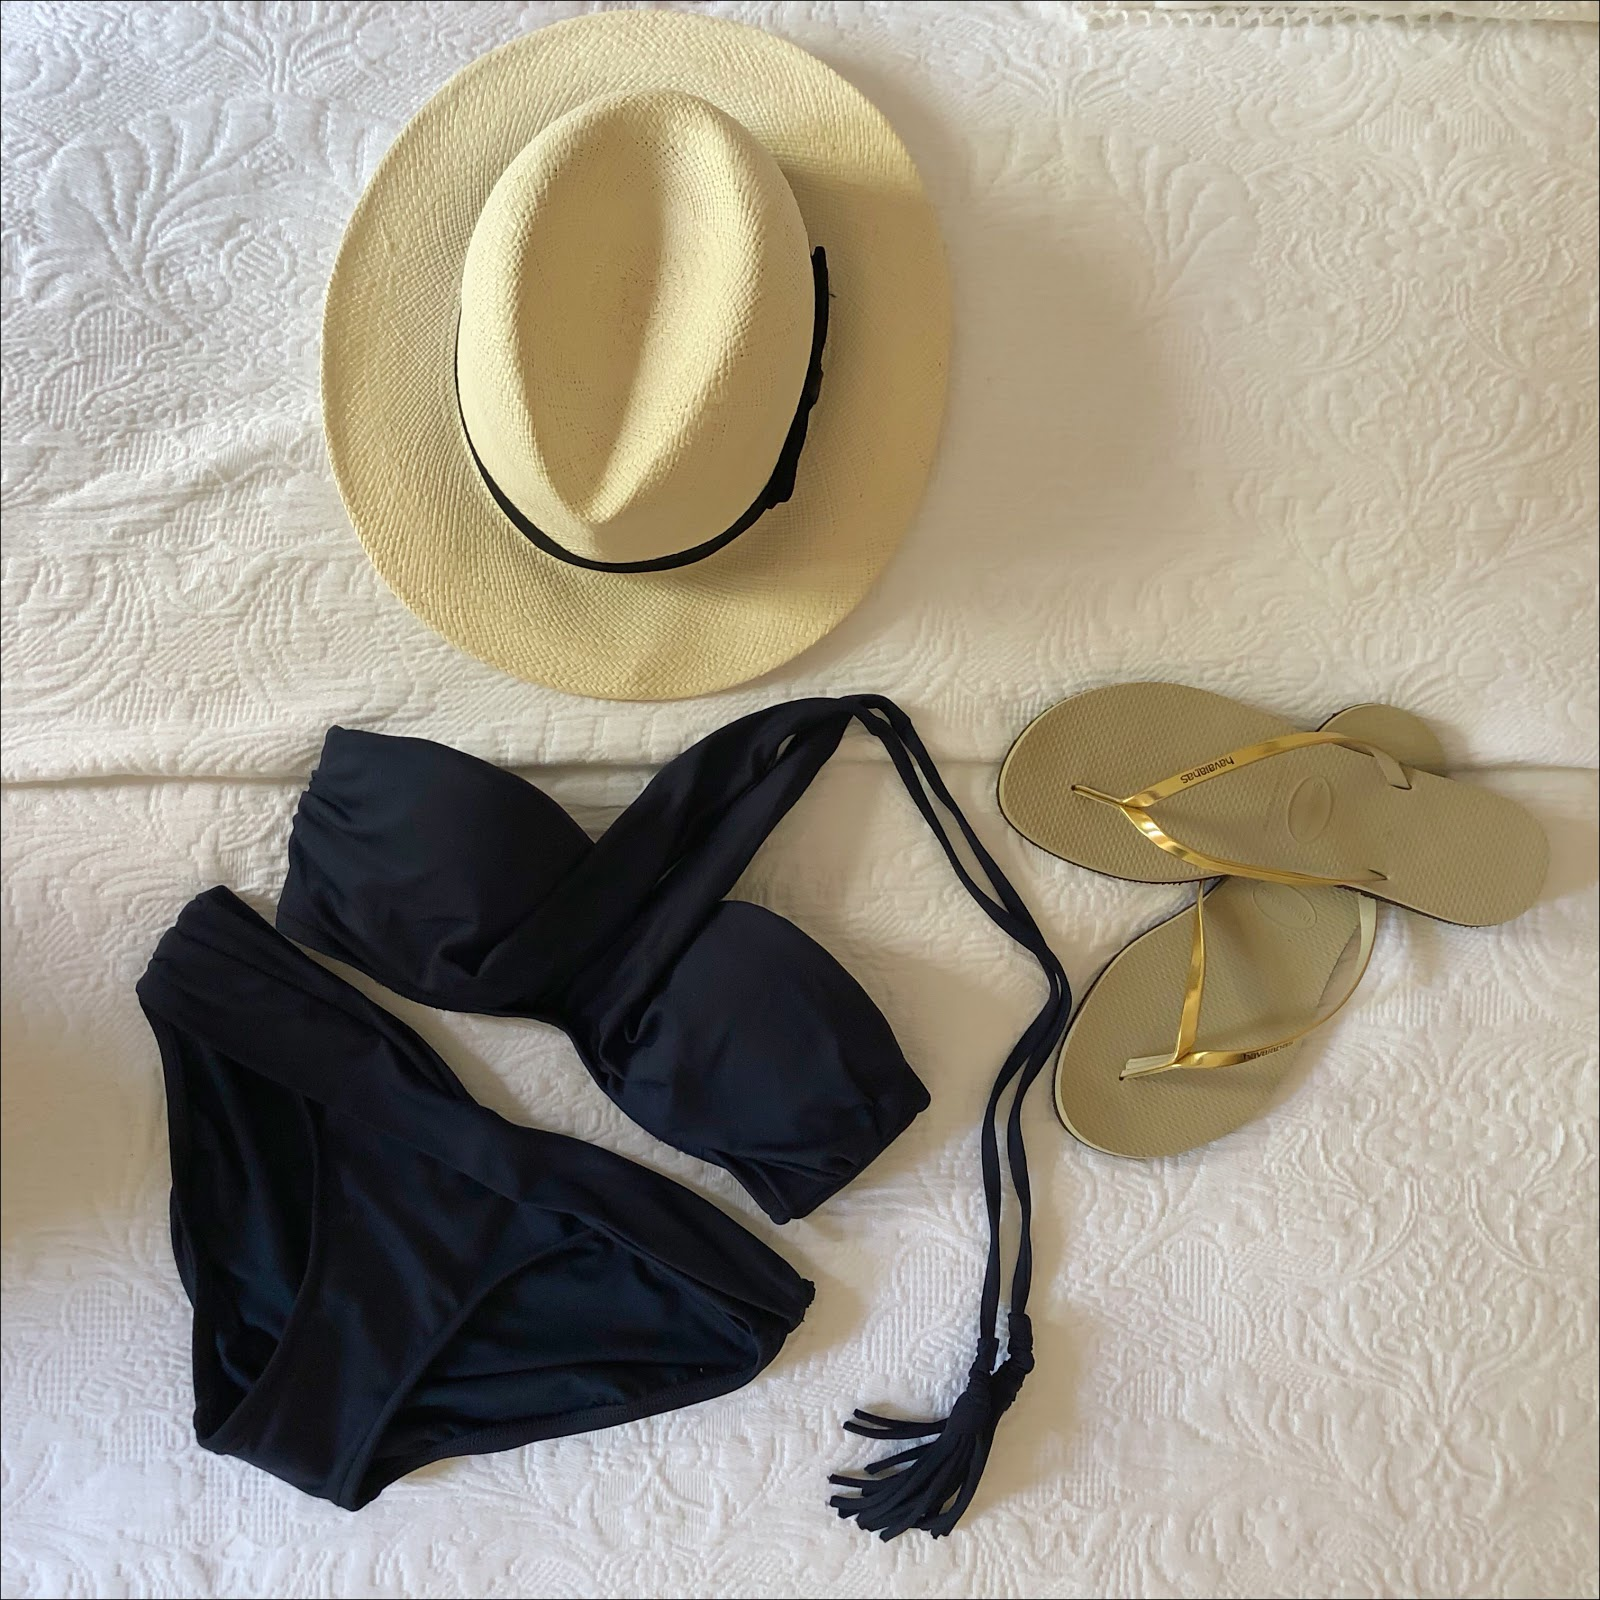 my midlife fashion, coco bay, marks and spencer handwoven panama hat, seafolly indigo wrap front bandeau bikini top, seafolly indigio twist band pant, havaianas light gold you metallic flip flops